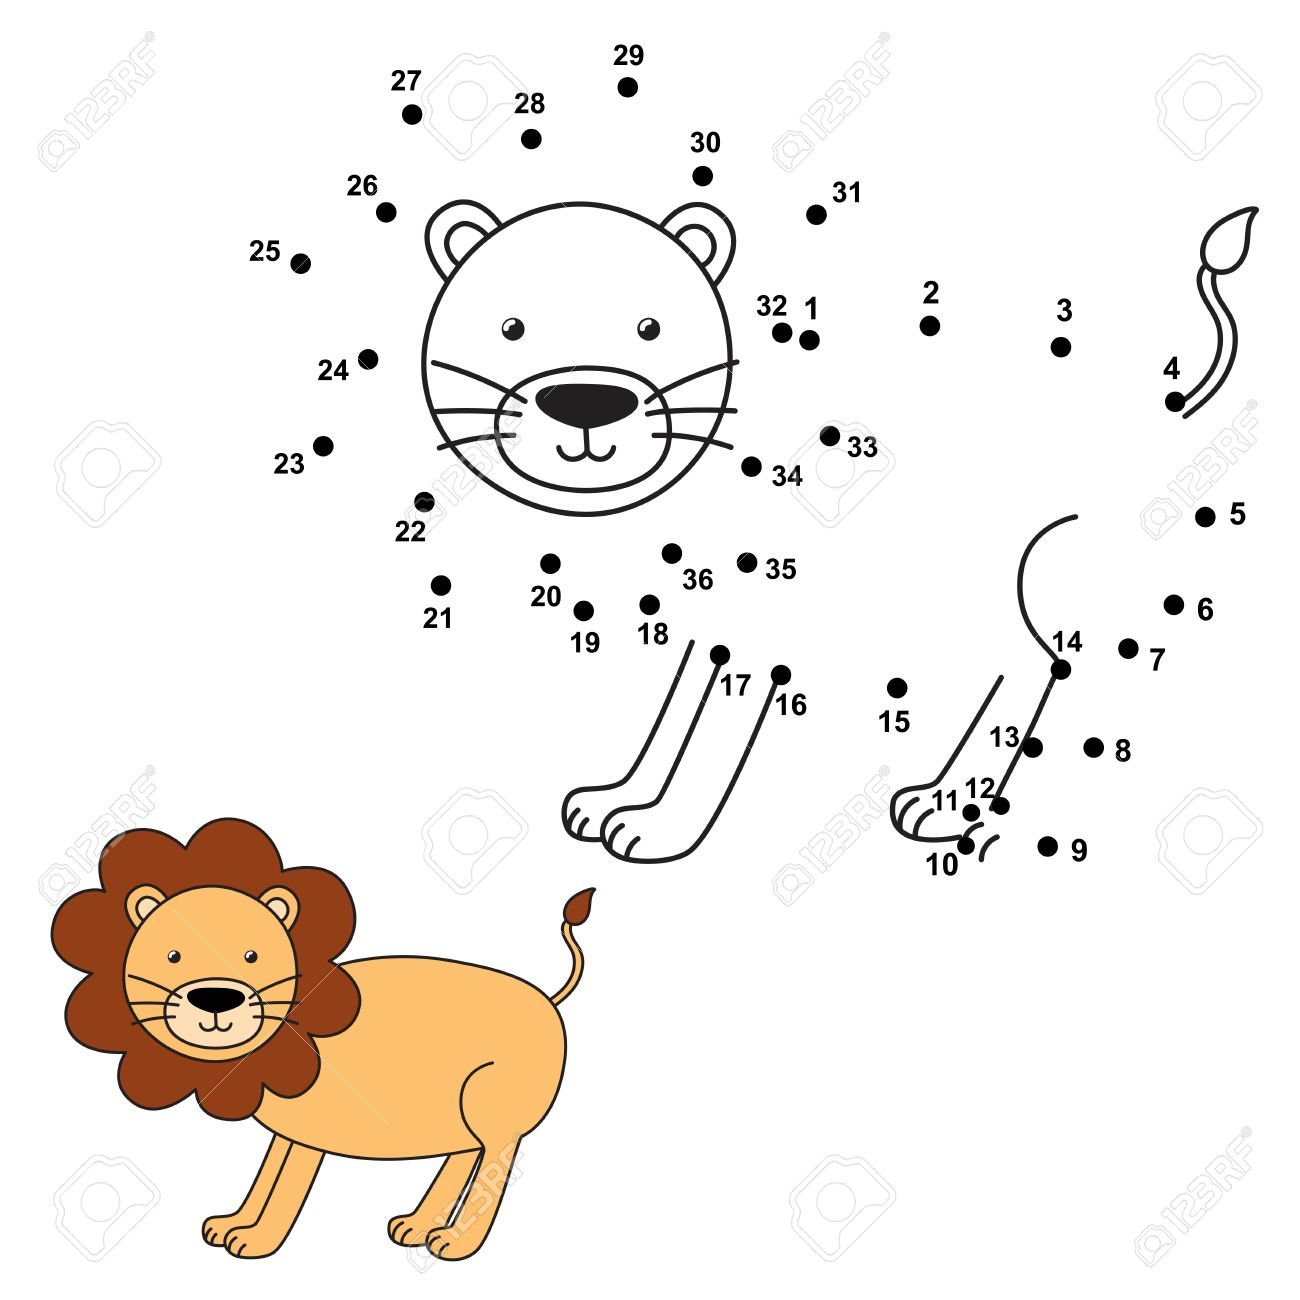 connect the dots to draw the cute lion and color it educational